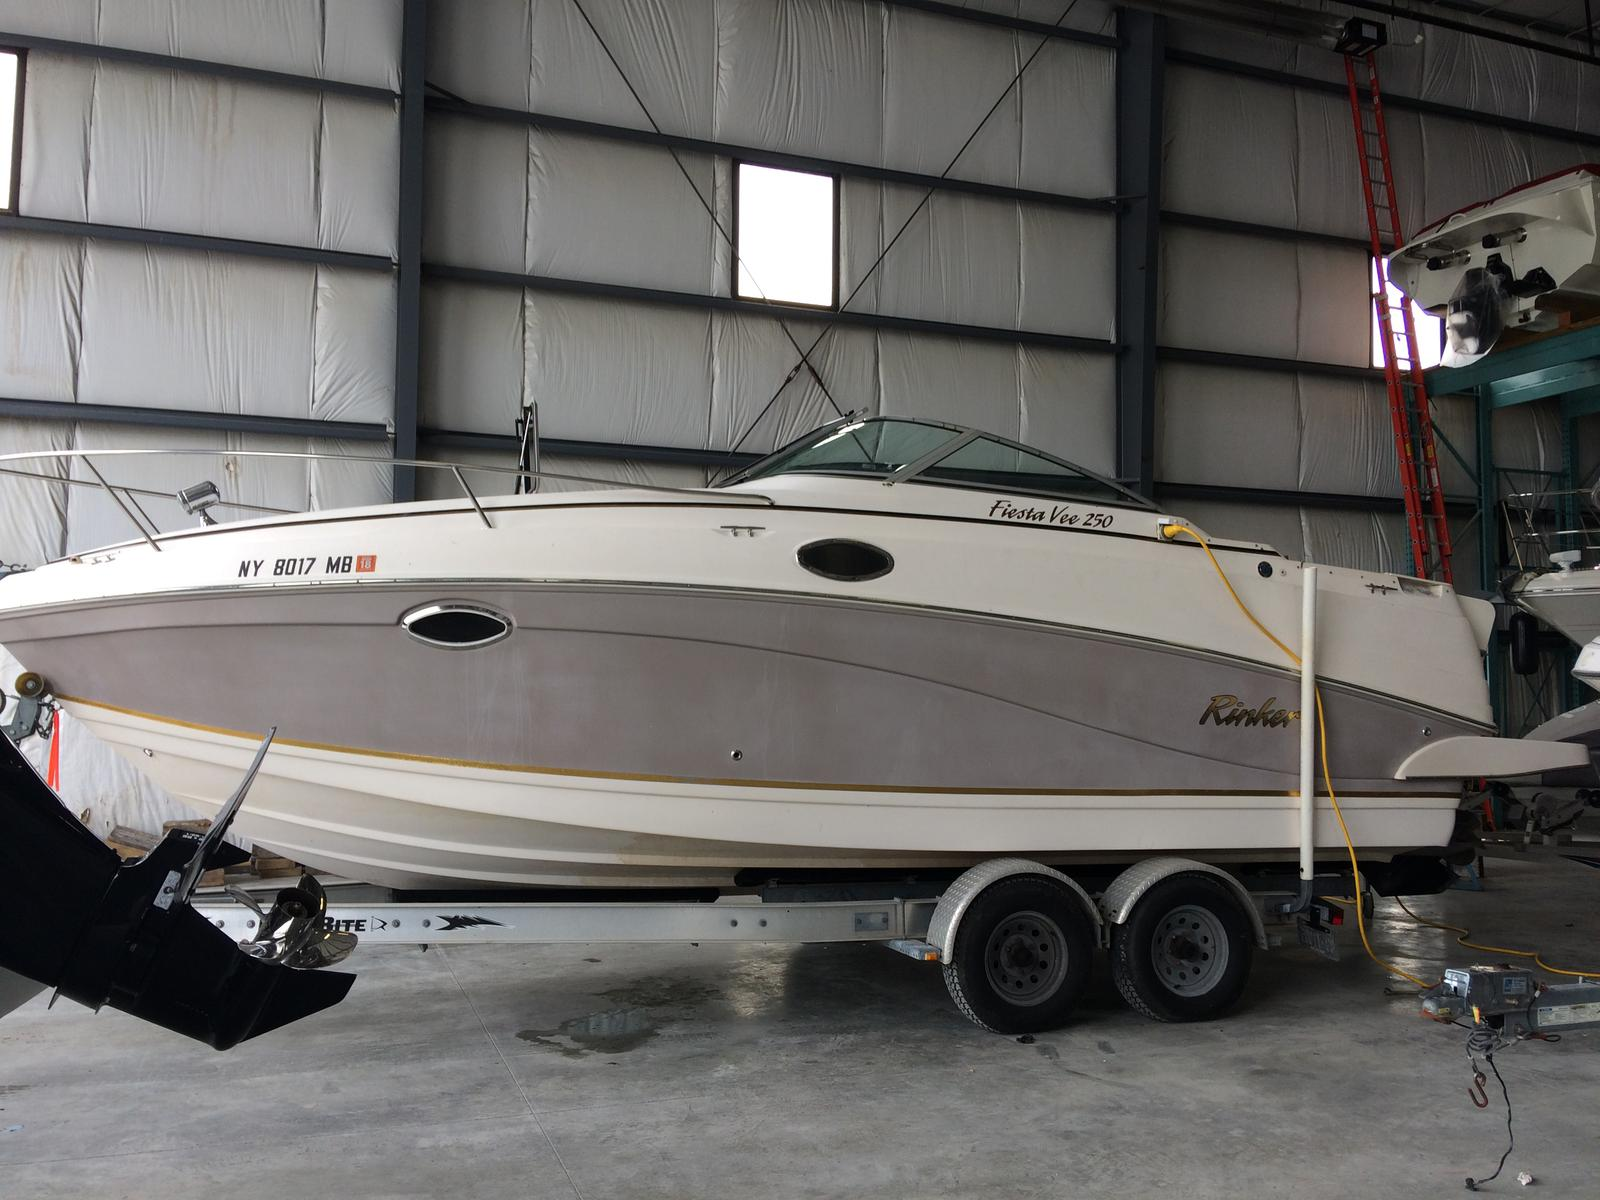 2004 RINKER VIESTA VEE 250 for sale